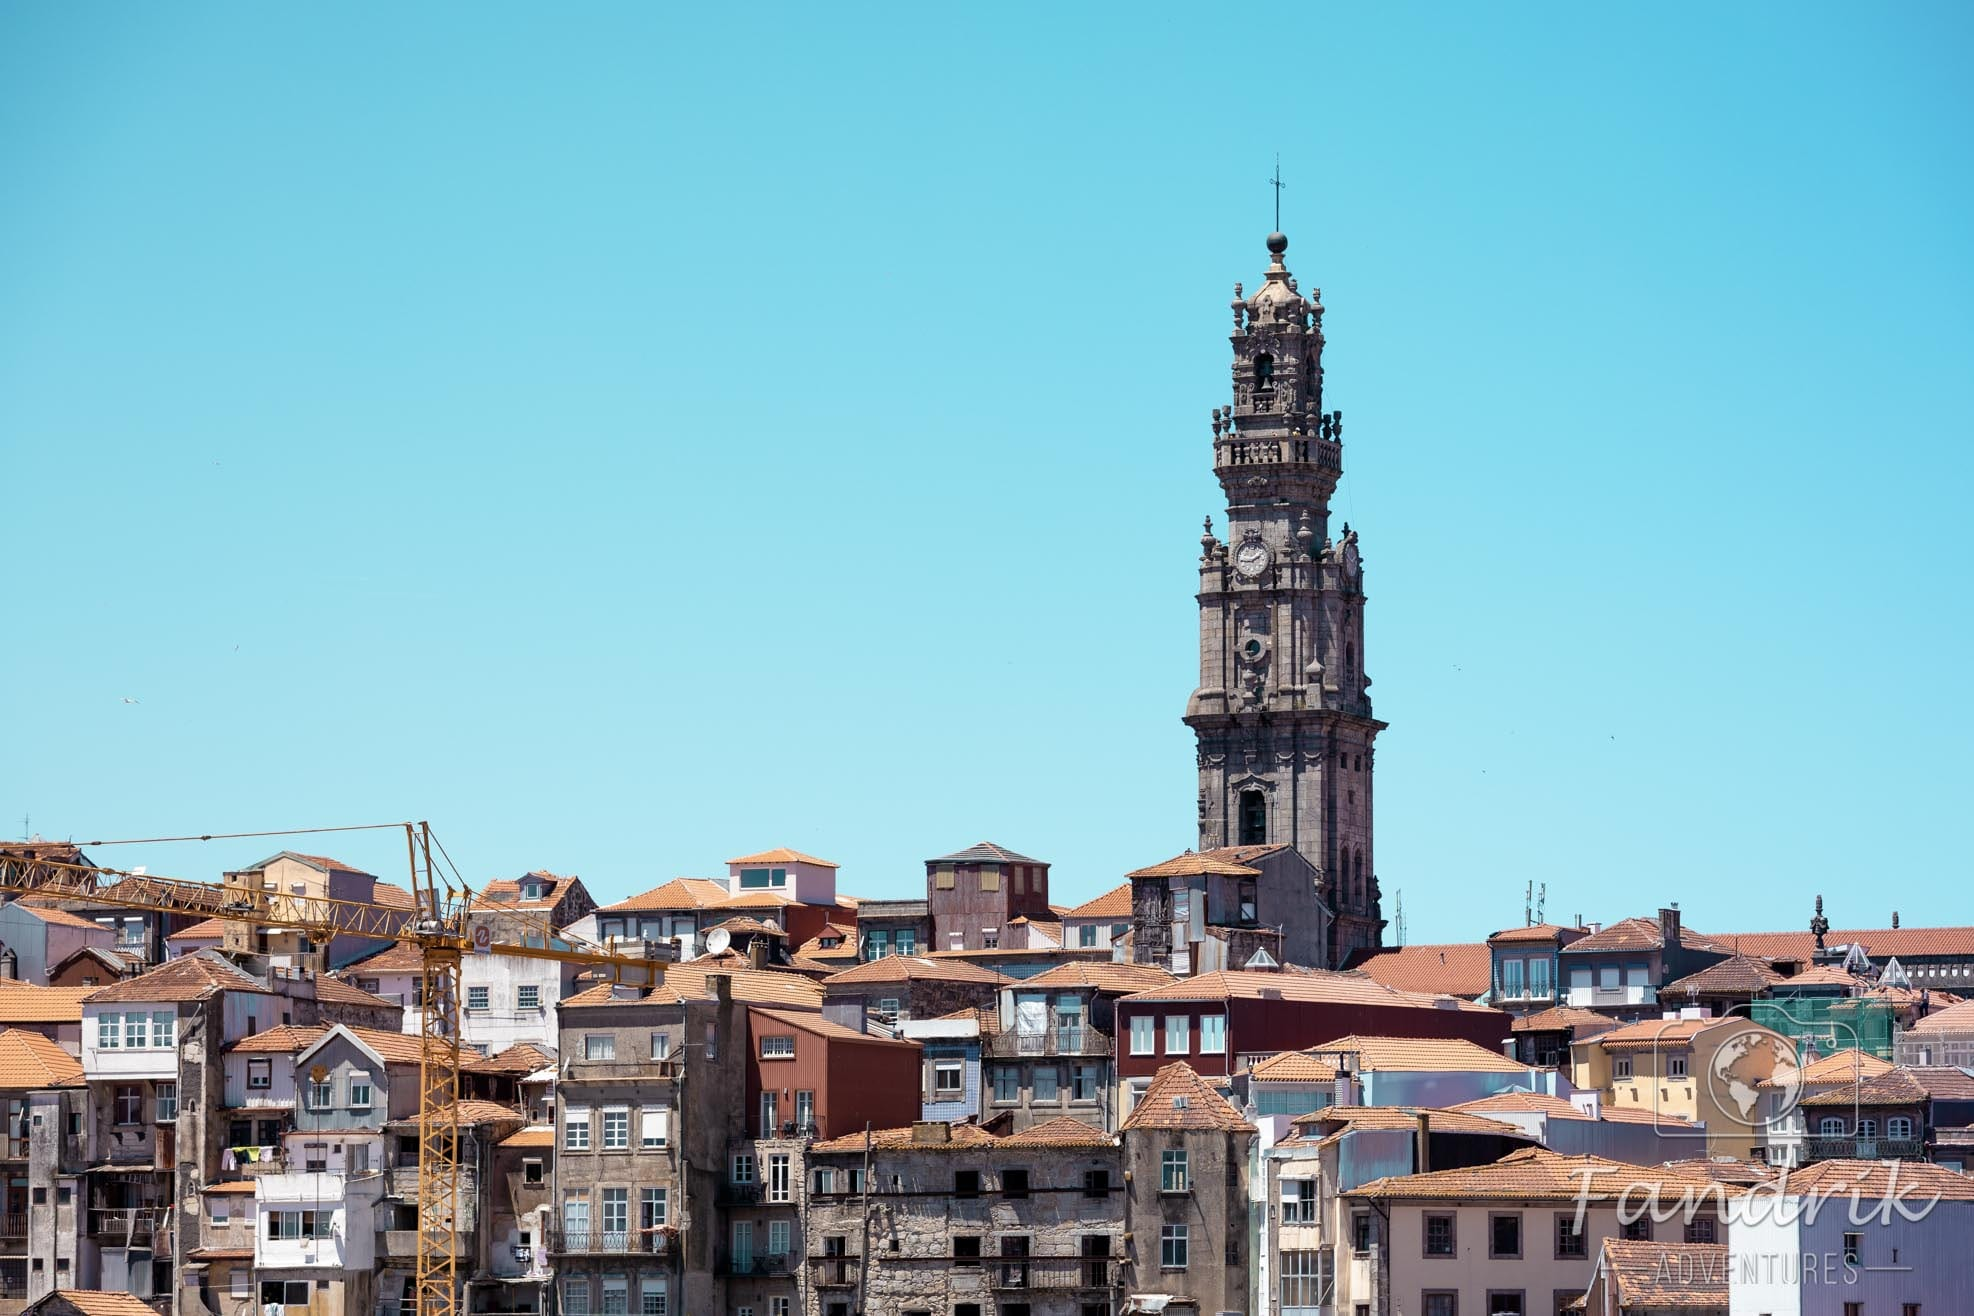 View of the red roofs of Porto with a high tower in the background with a light blue sky